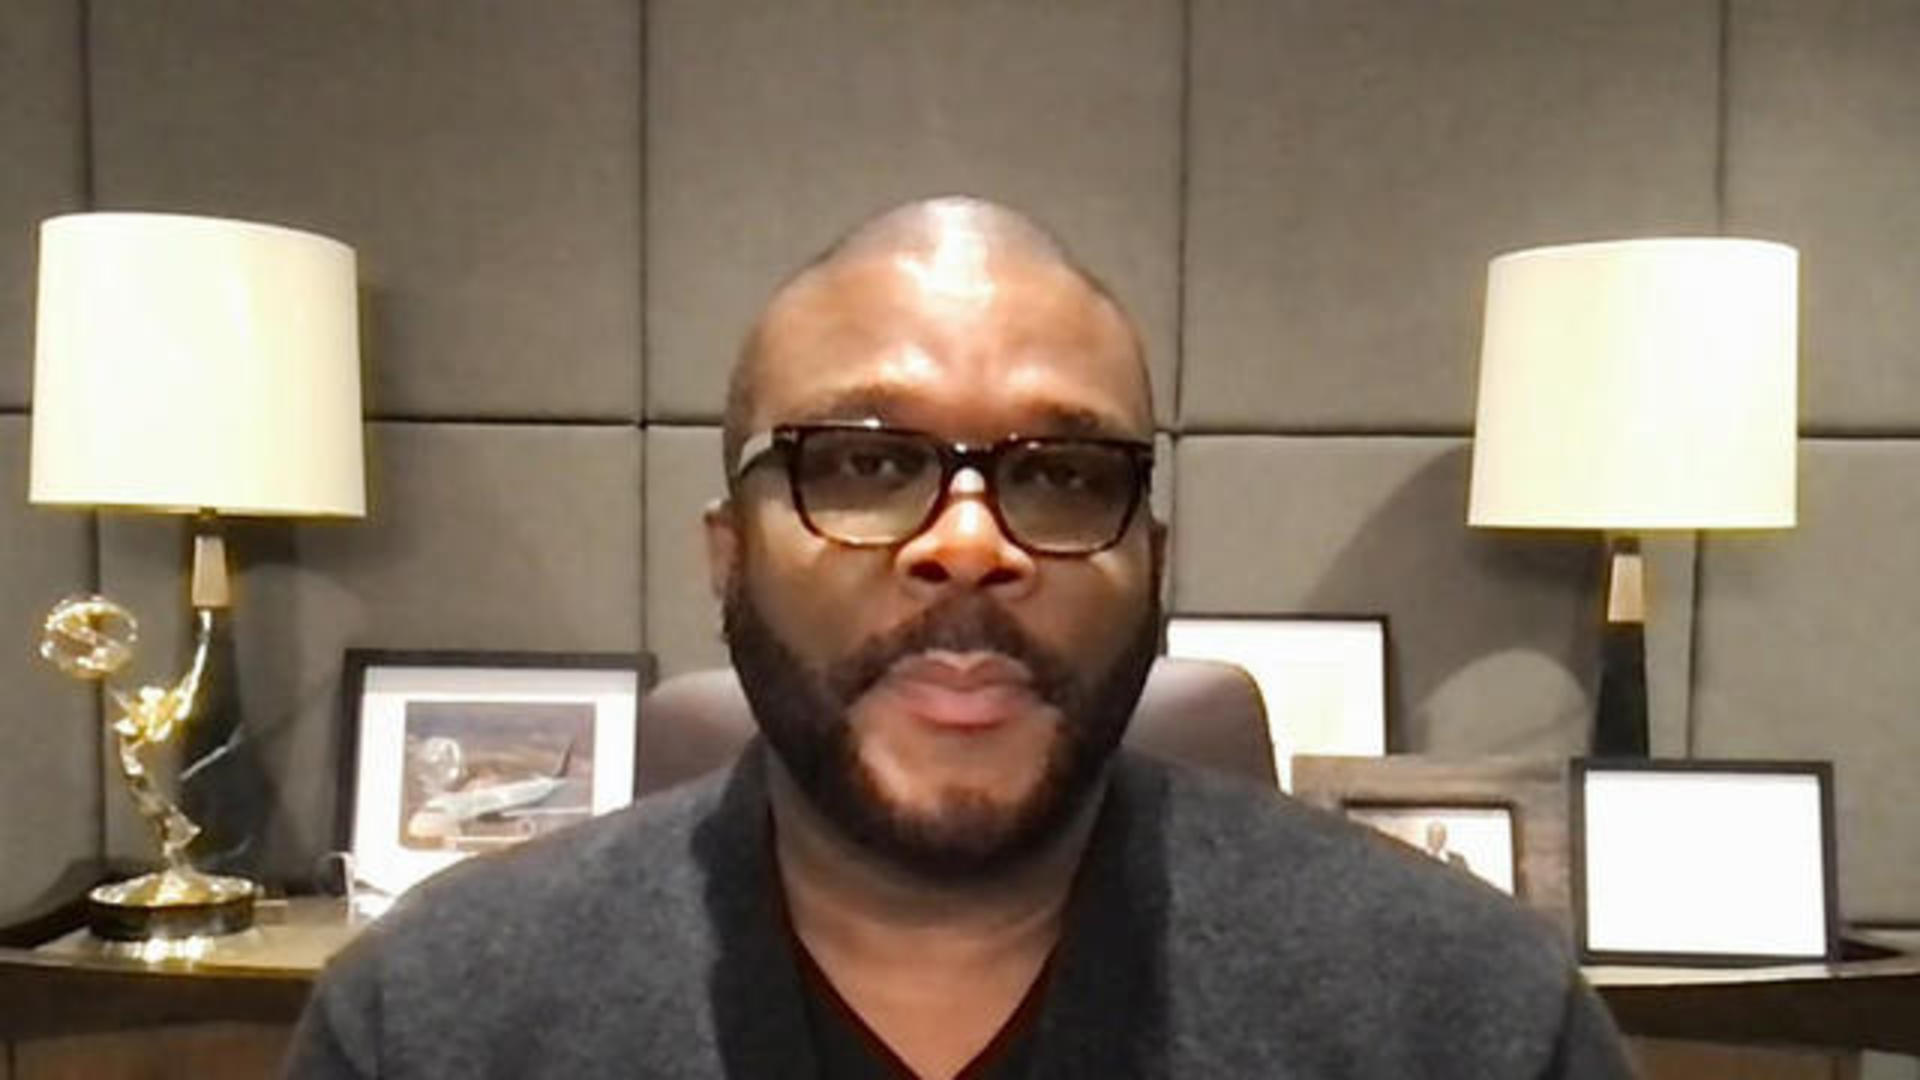 Tyler Perry, who is doing his part to help people during the coronavirus plague pandemic, asks churches: 'What good are you if you are not meeting the needs of the community?'